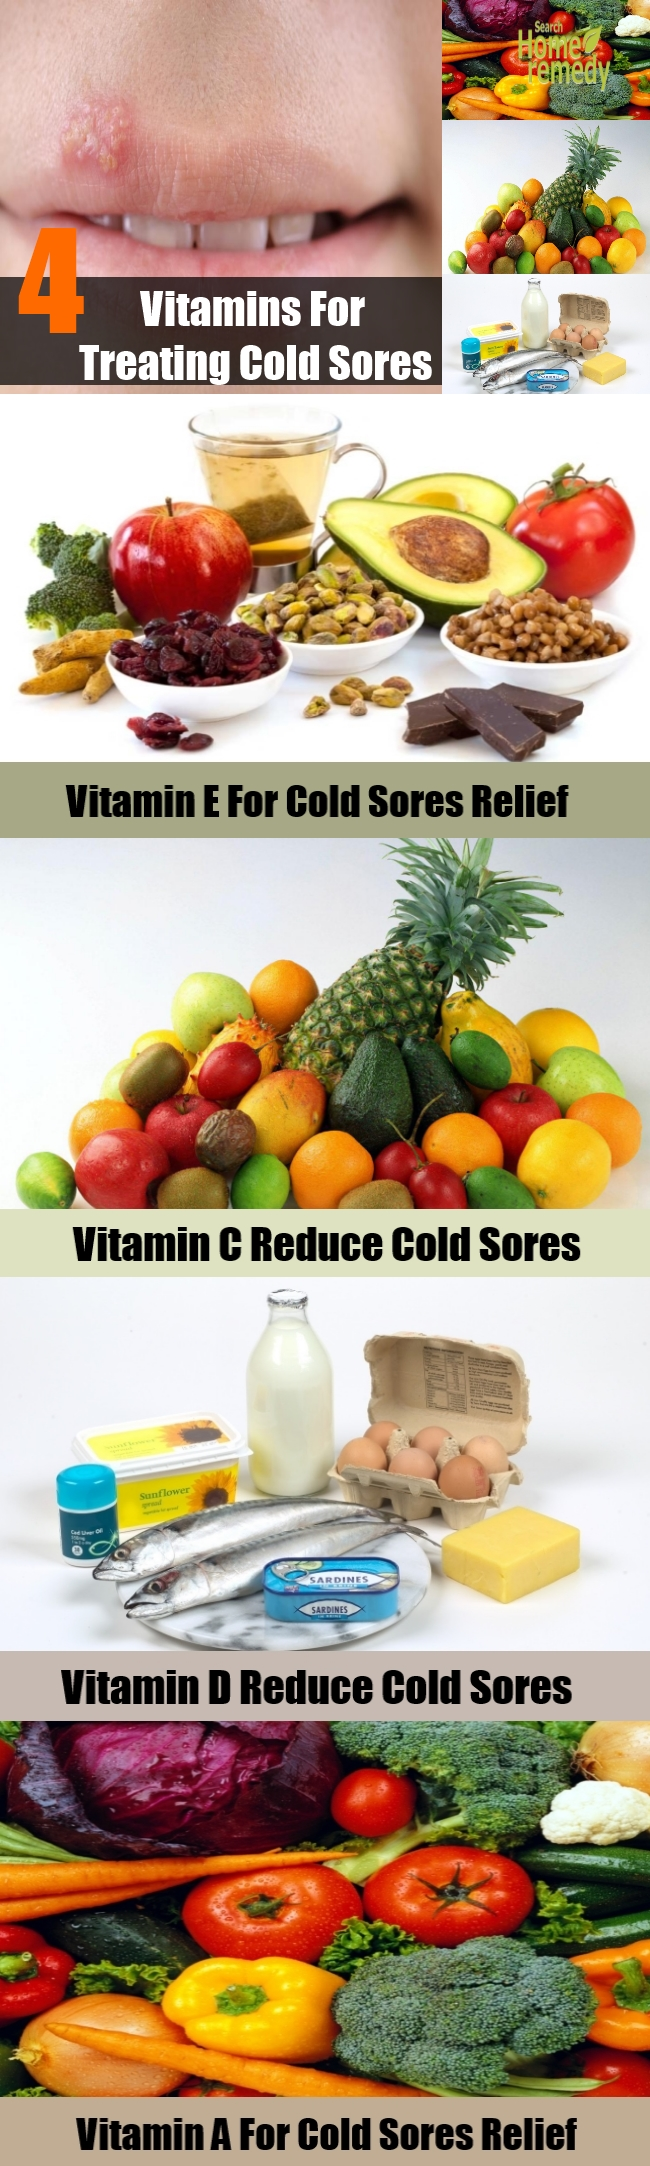 4 Best Vitamins For Treating Cold Sores